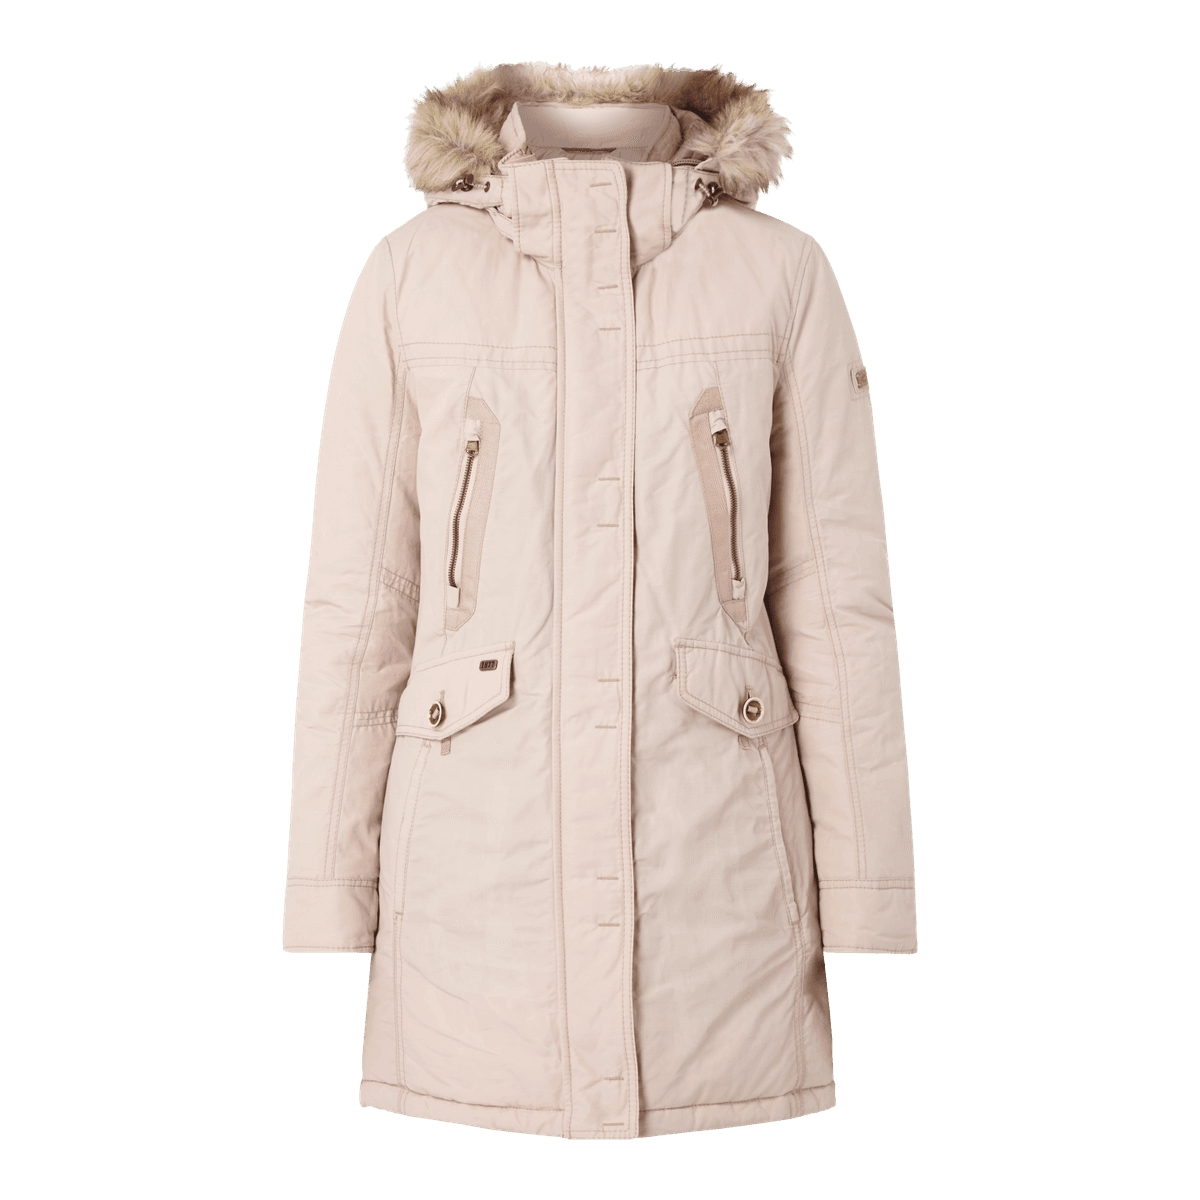 camel active parka mit abnehmbarer kapuze webpelz winter jacke damen mantel neu ebay. Black Bedroom Furniture Sets. Home Design Ideas